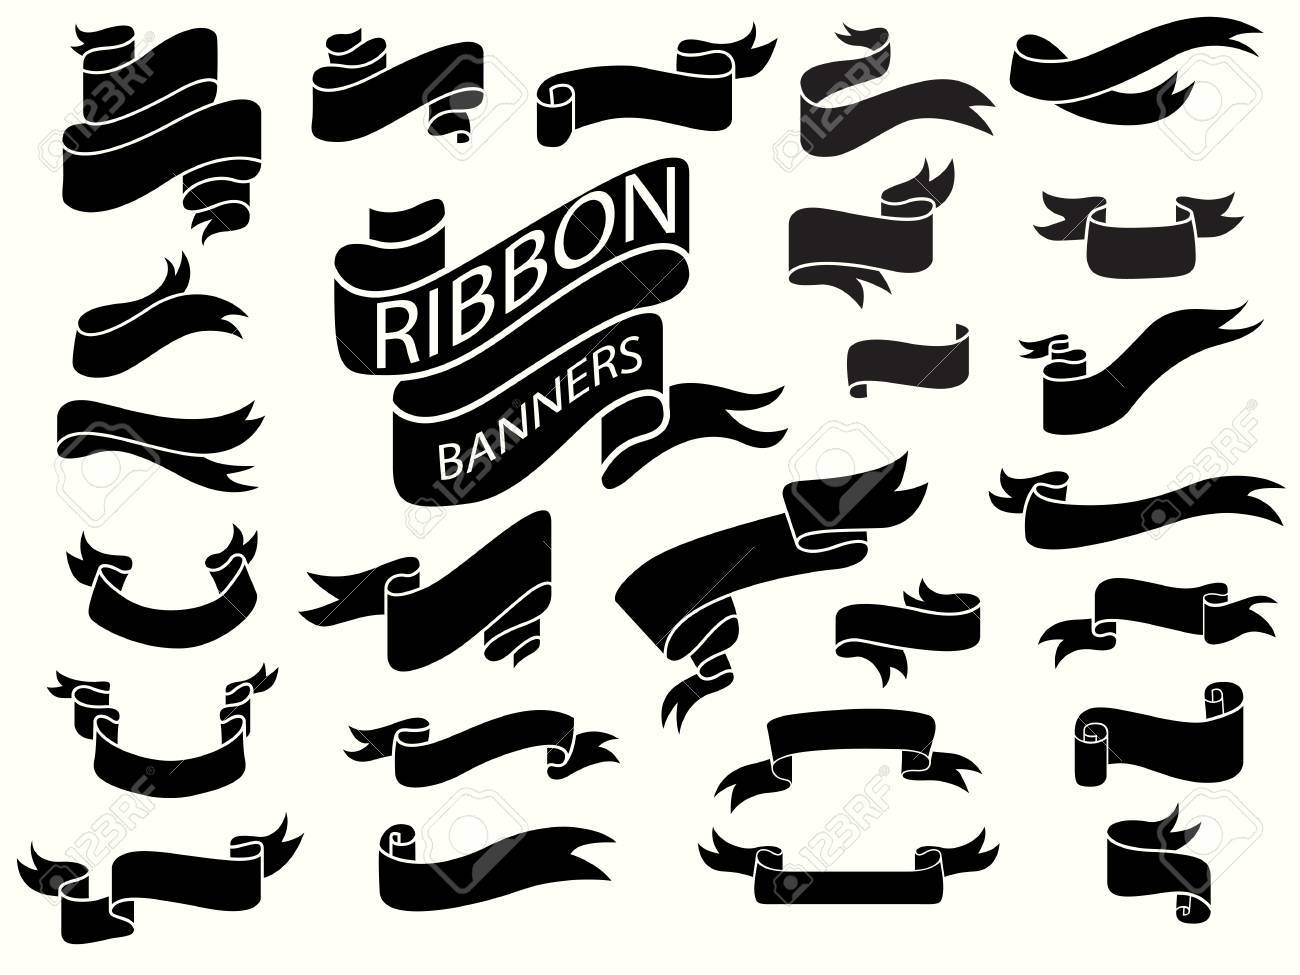 Black Ribbon Banners Design Template Curved Ribbon Banners Royalty Free Cliparts Vectors And Stock Illustration Image 67480750